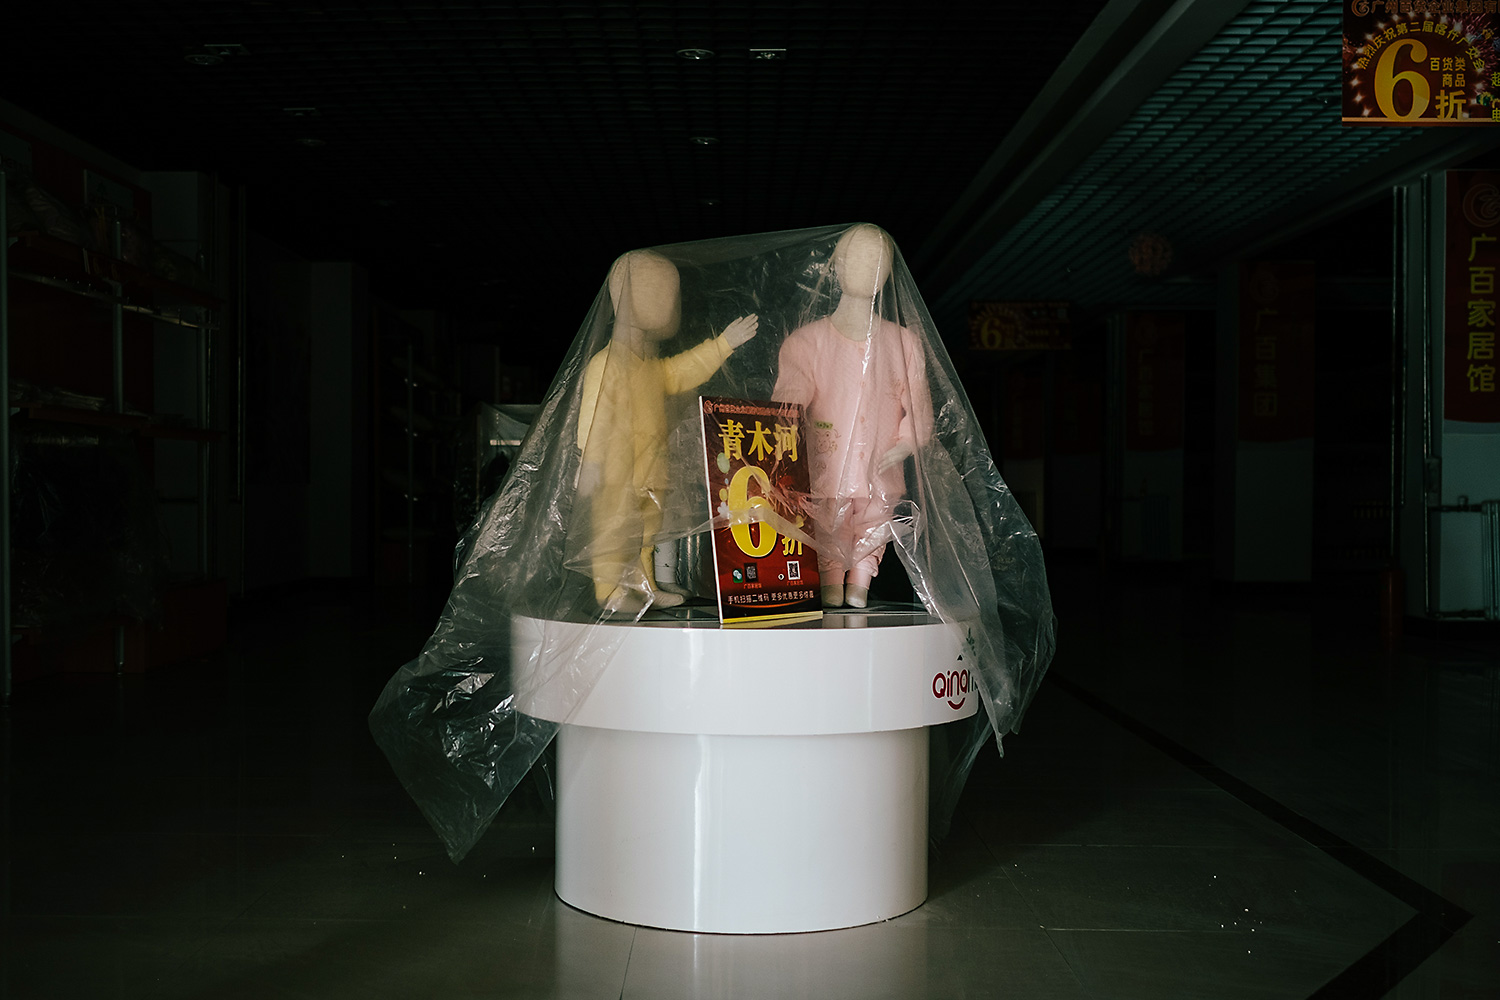 A plastic covering protects these child-sized mannequins from desert sand at the T.I.T. Lifestyle Store, opened by a textile company from Guangzhou.